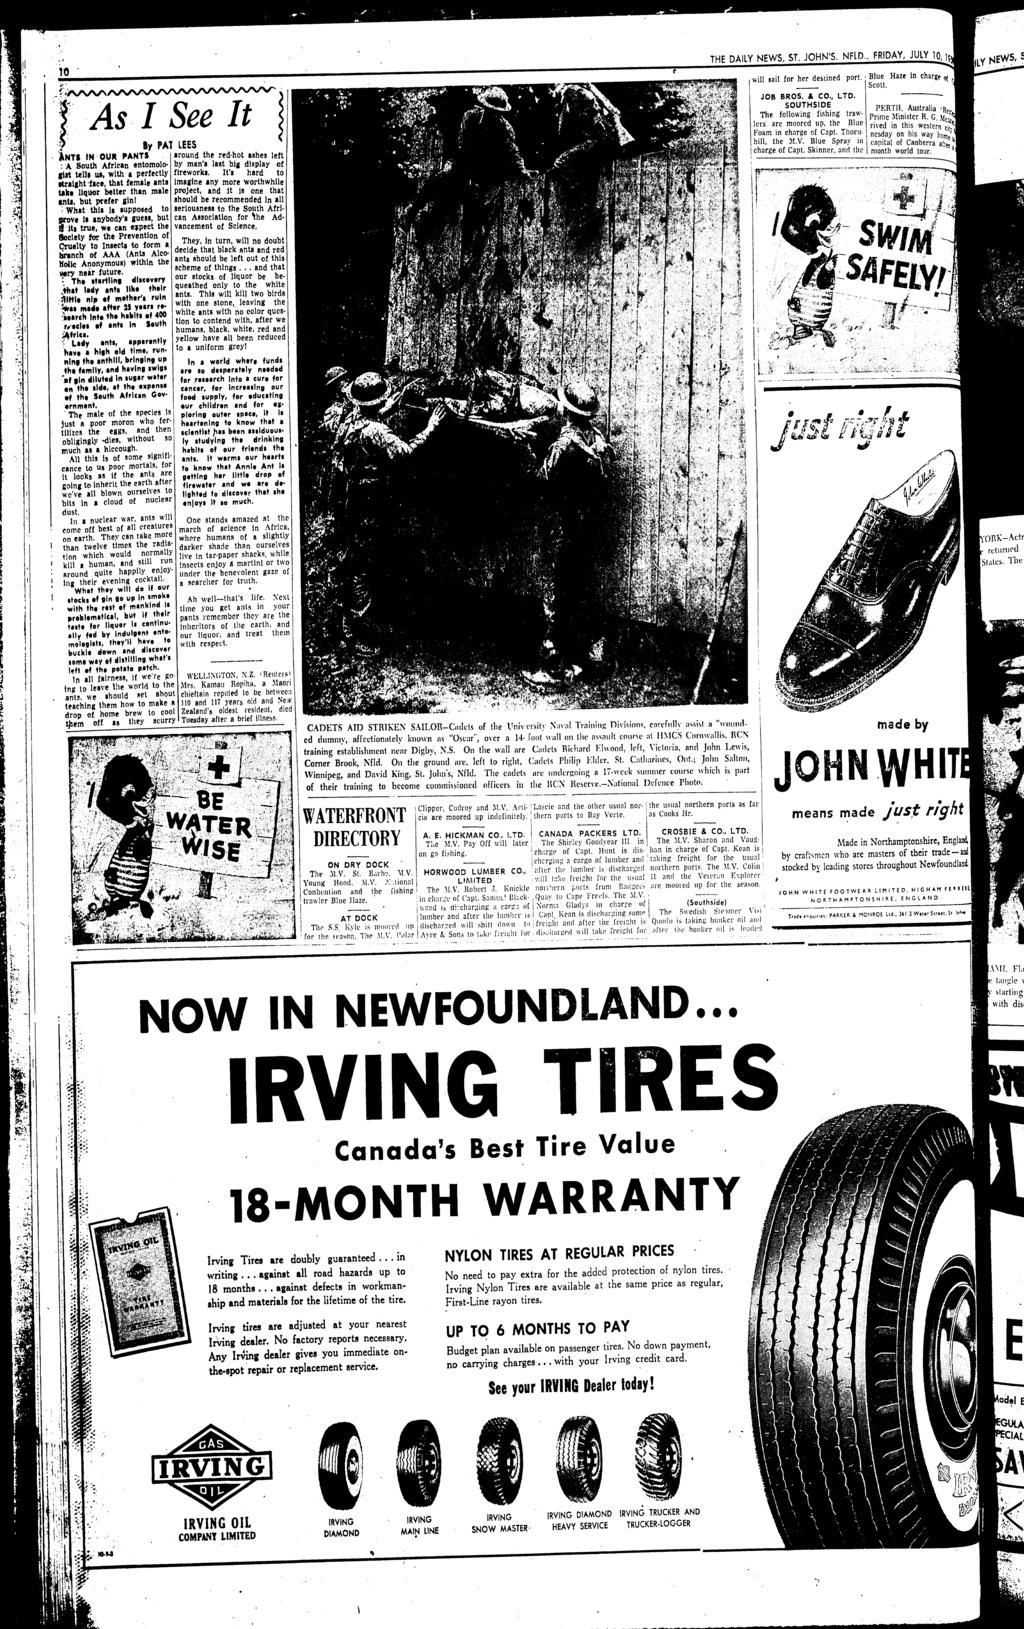 THE DAilY NEWS ST JOHN'S NFlD FRDAY JULY 1 10 will &ail for her de&tined port Blue Haze n chargp oj Scott _ f;'vvv'\ ~'r'roul'''''''''''''' ''O'O~ JOB BROS & CO LTD 1 As See t SOUTHSDE PERT Australia